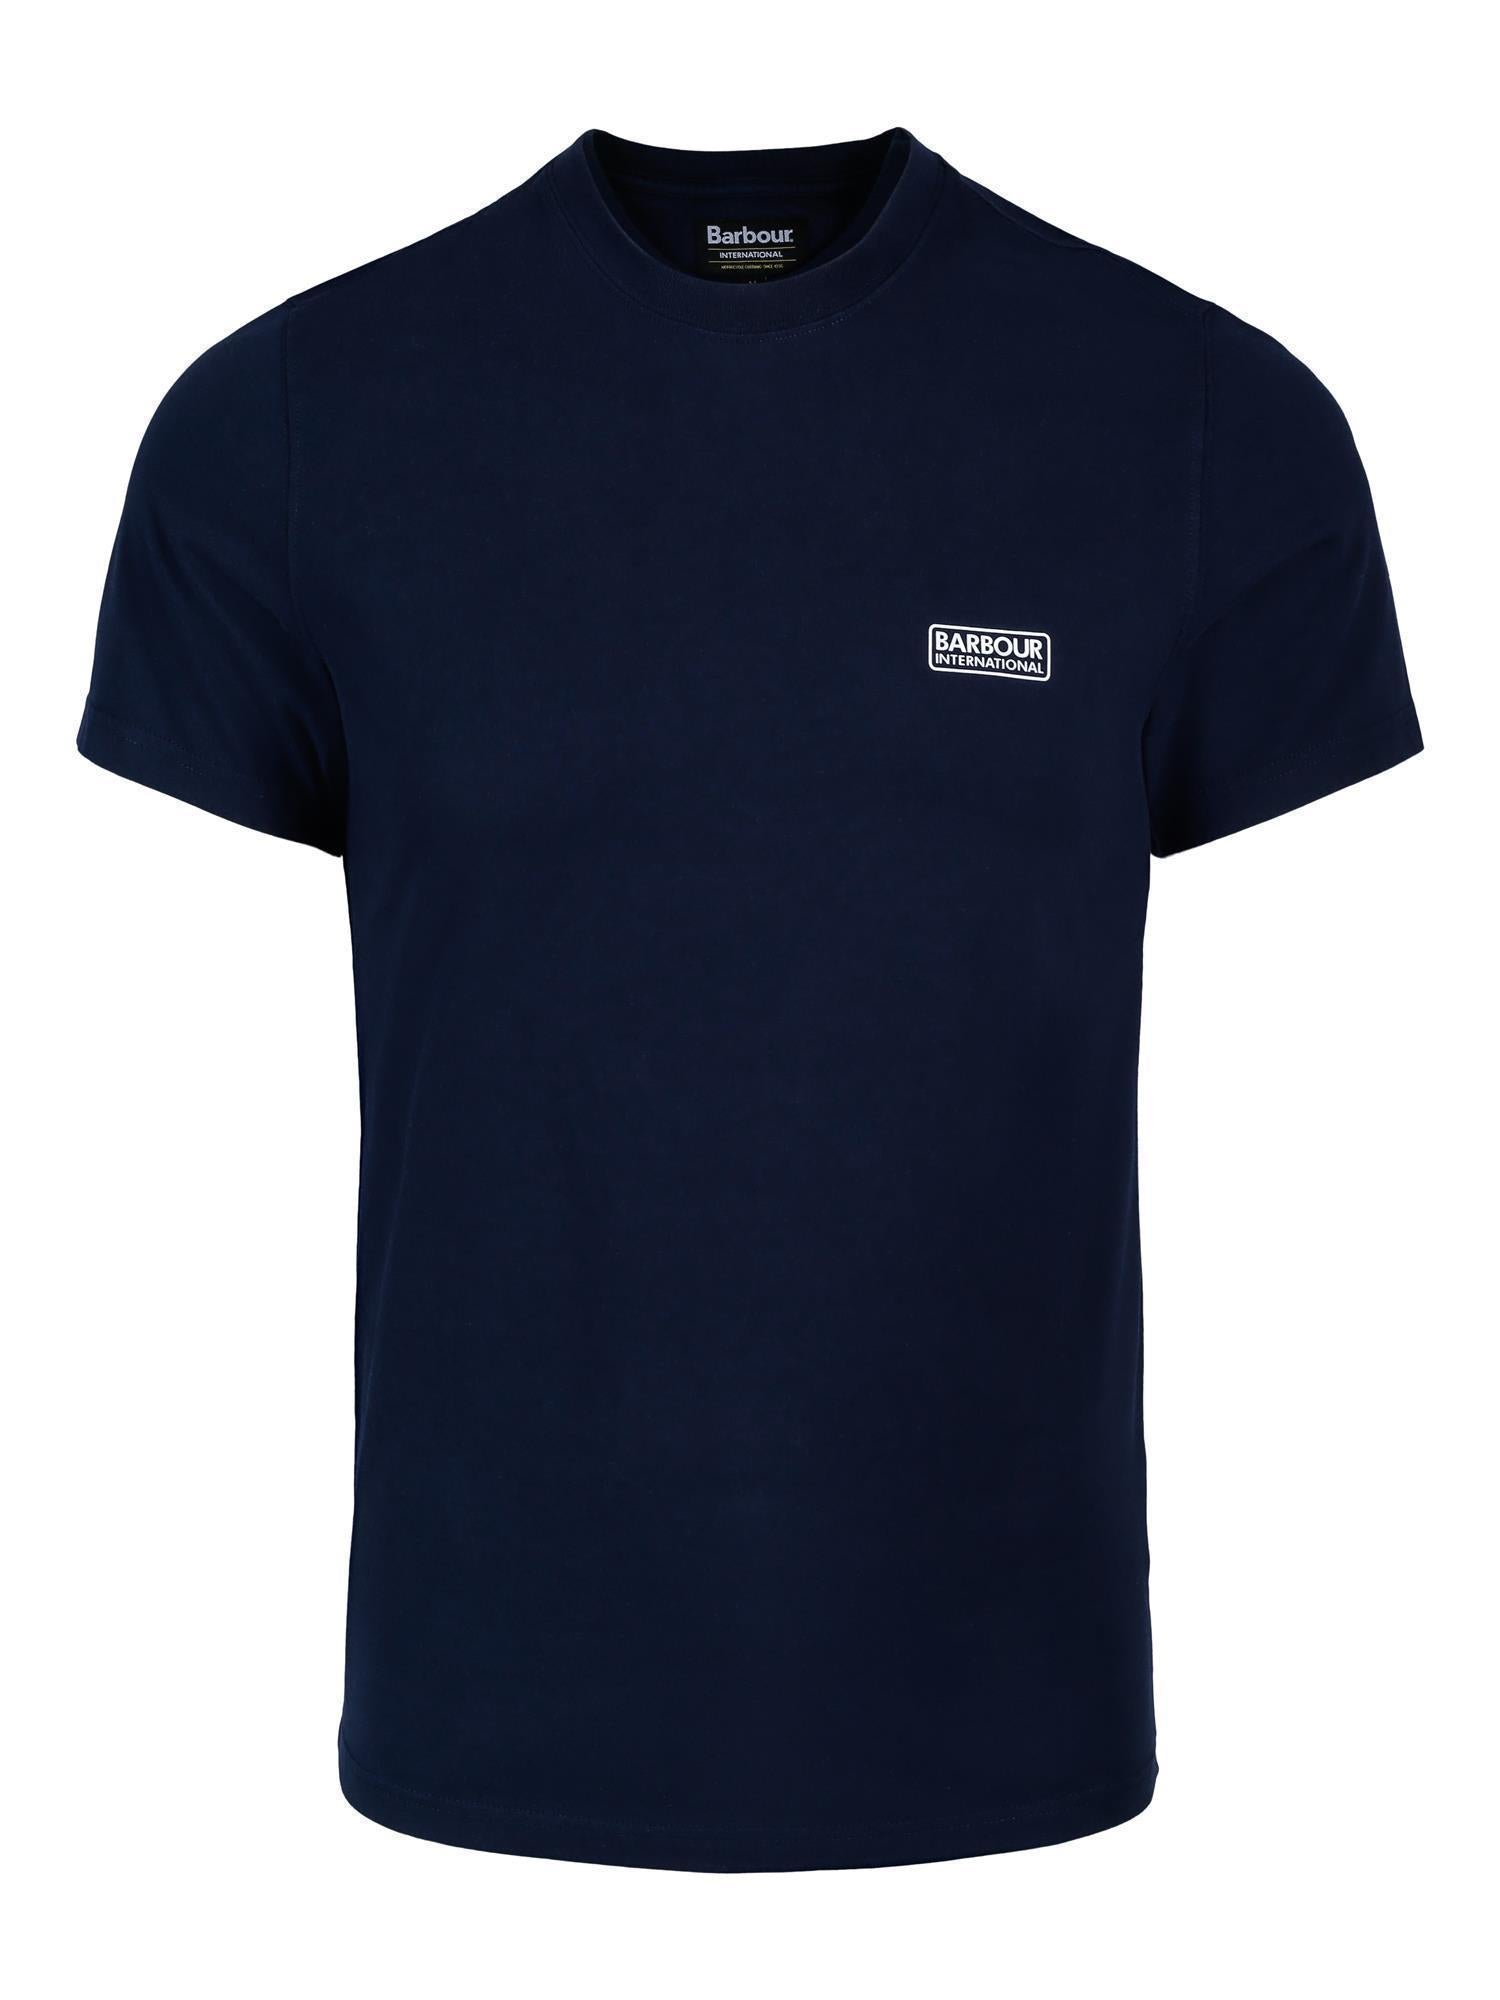 Barbour Small Logo Tee-Barbour-www.gunnaroye.no